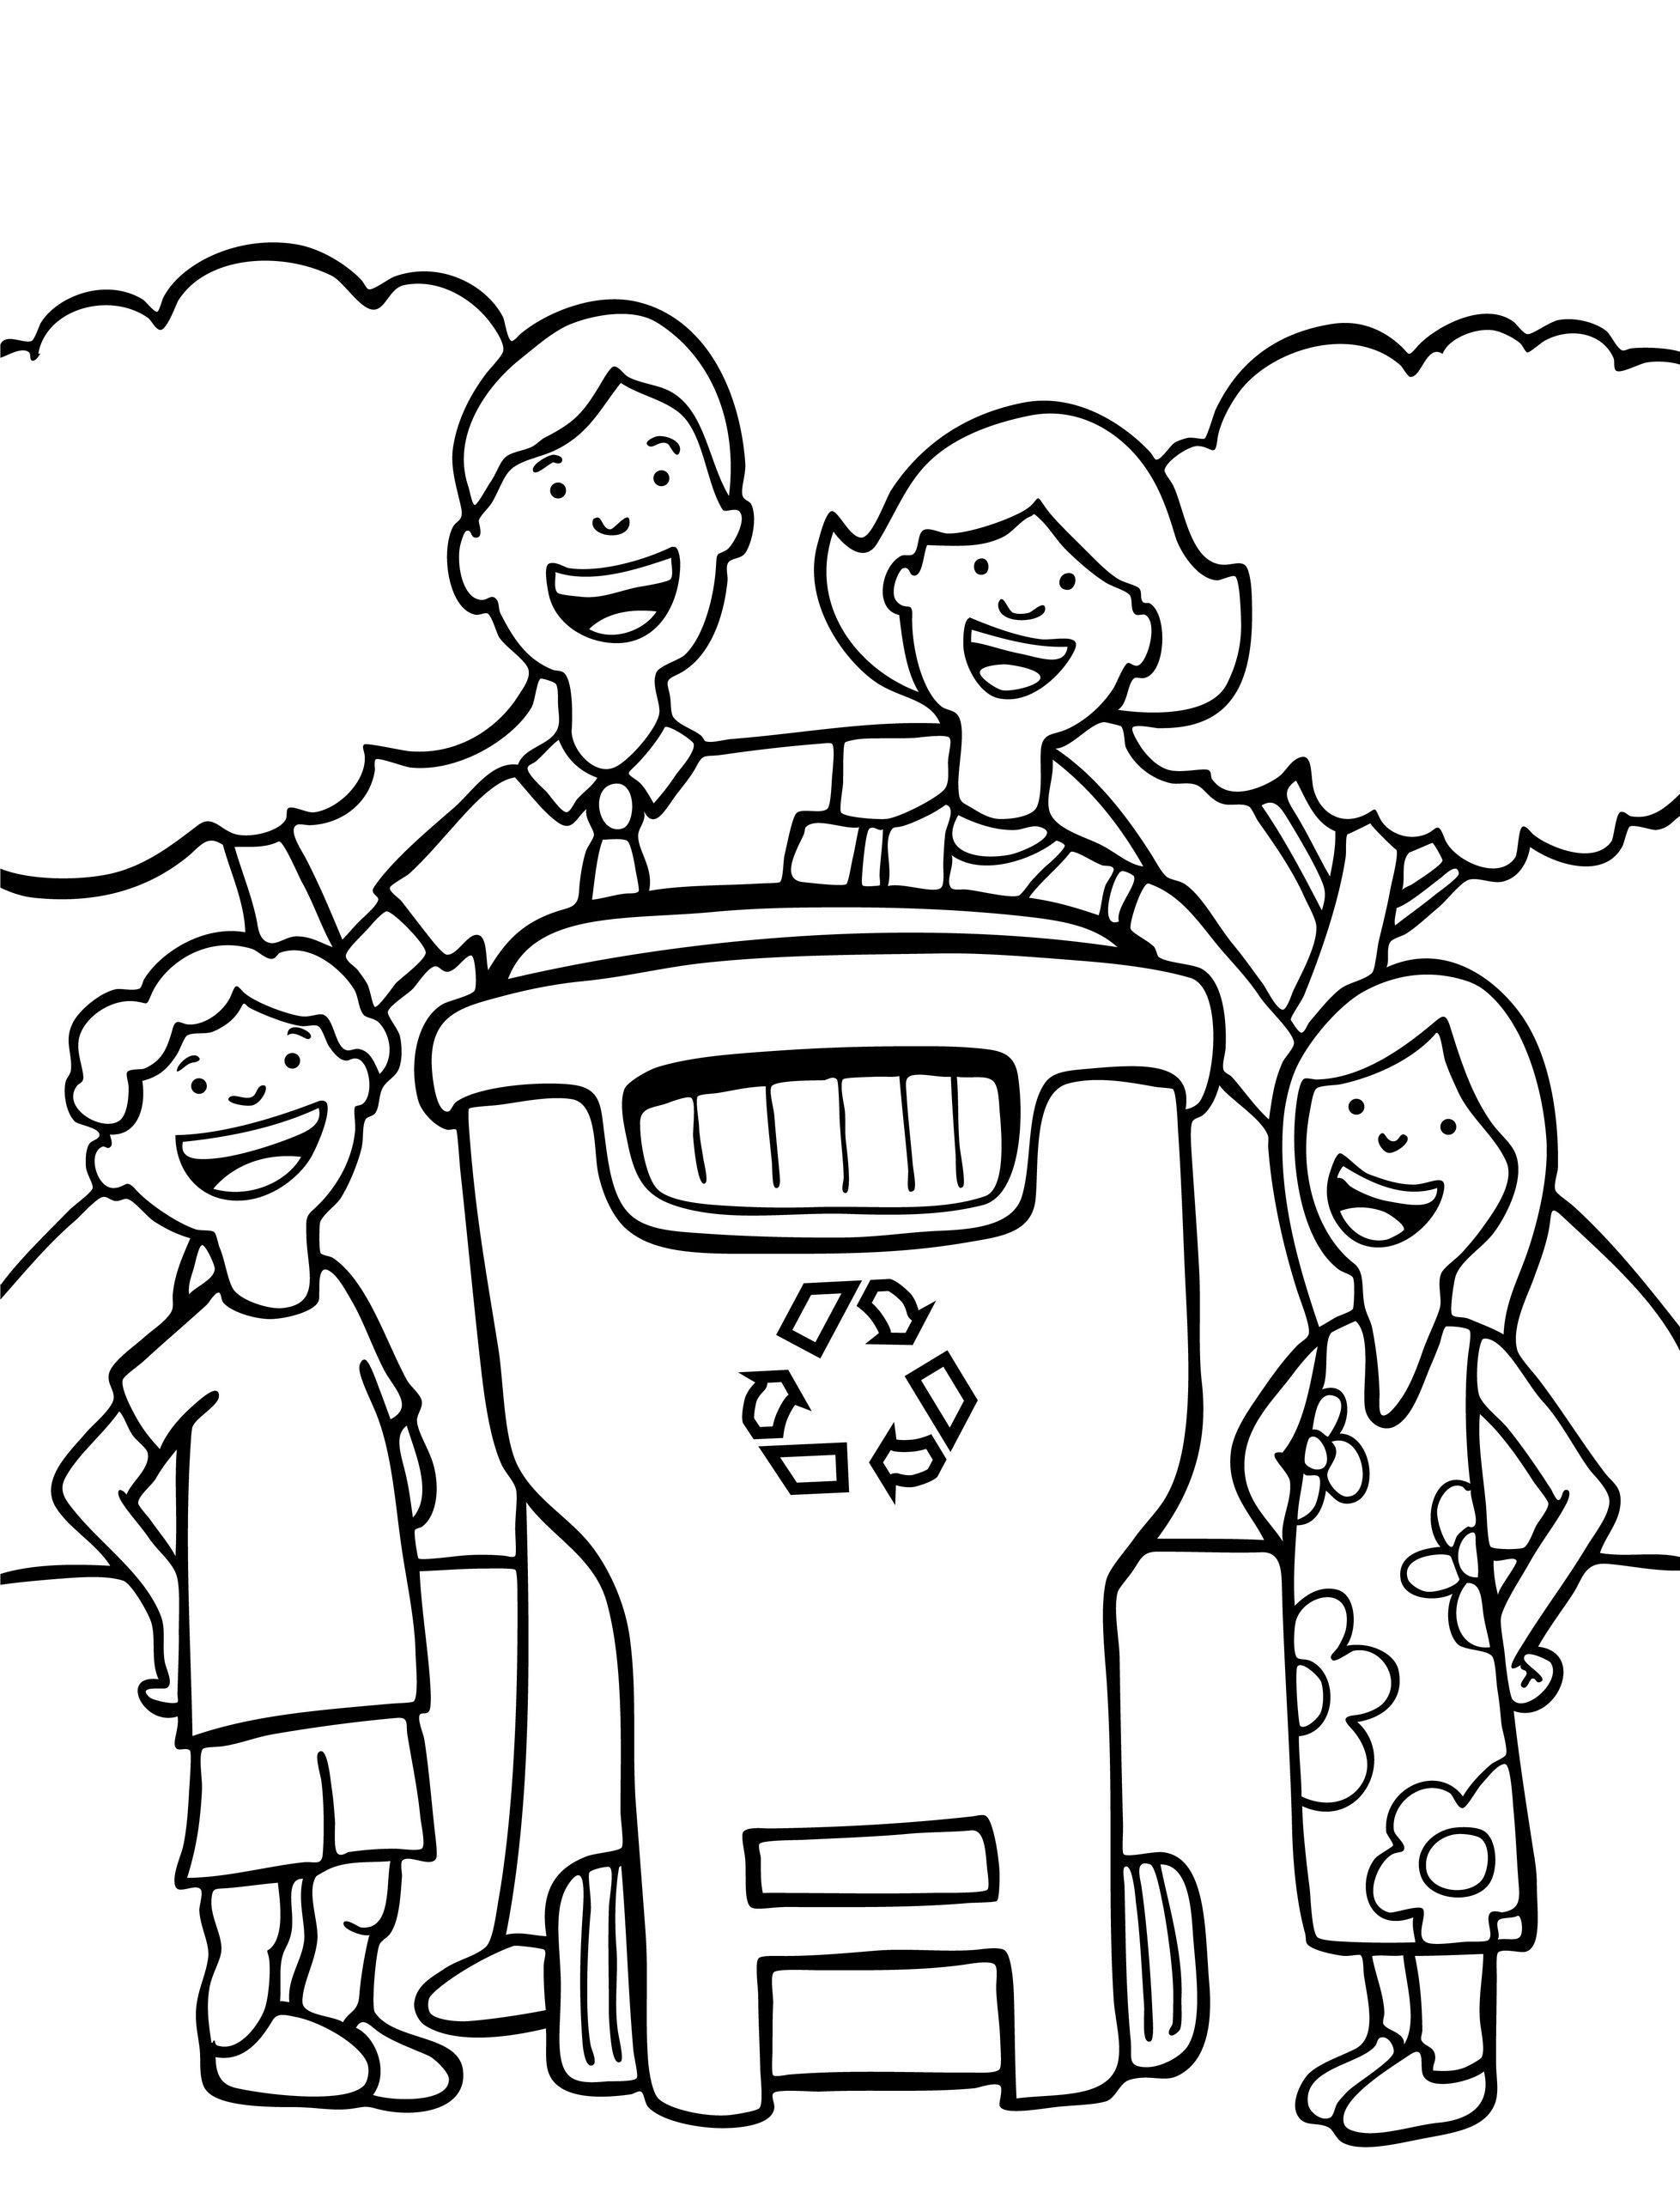 Free Earth Day coloring page for children Lets recycle Earth